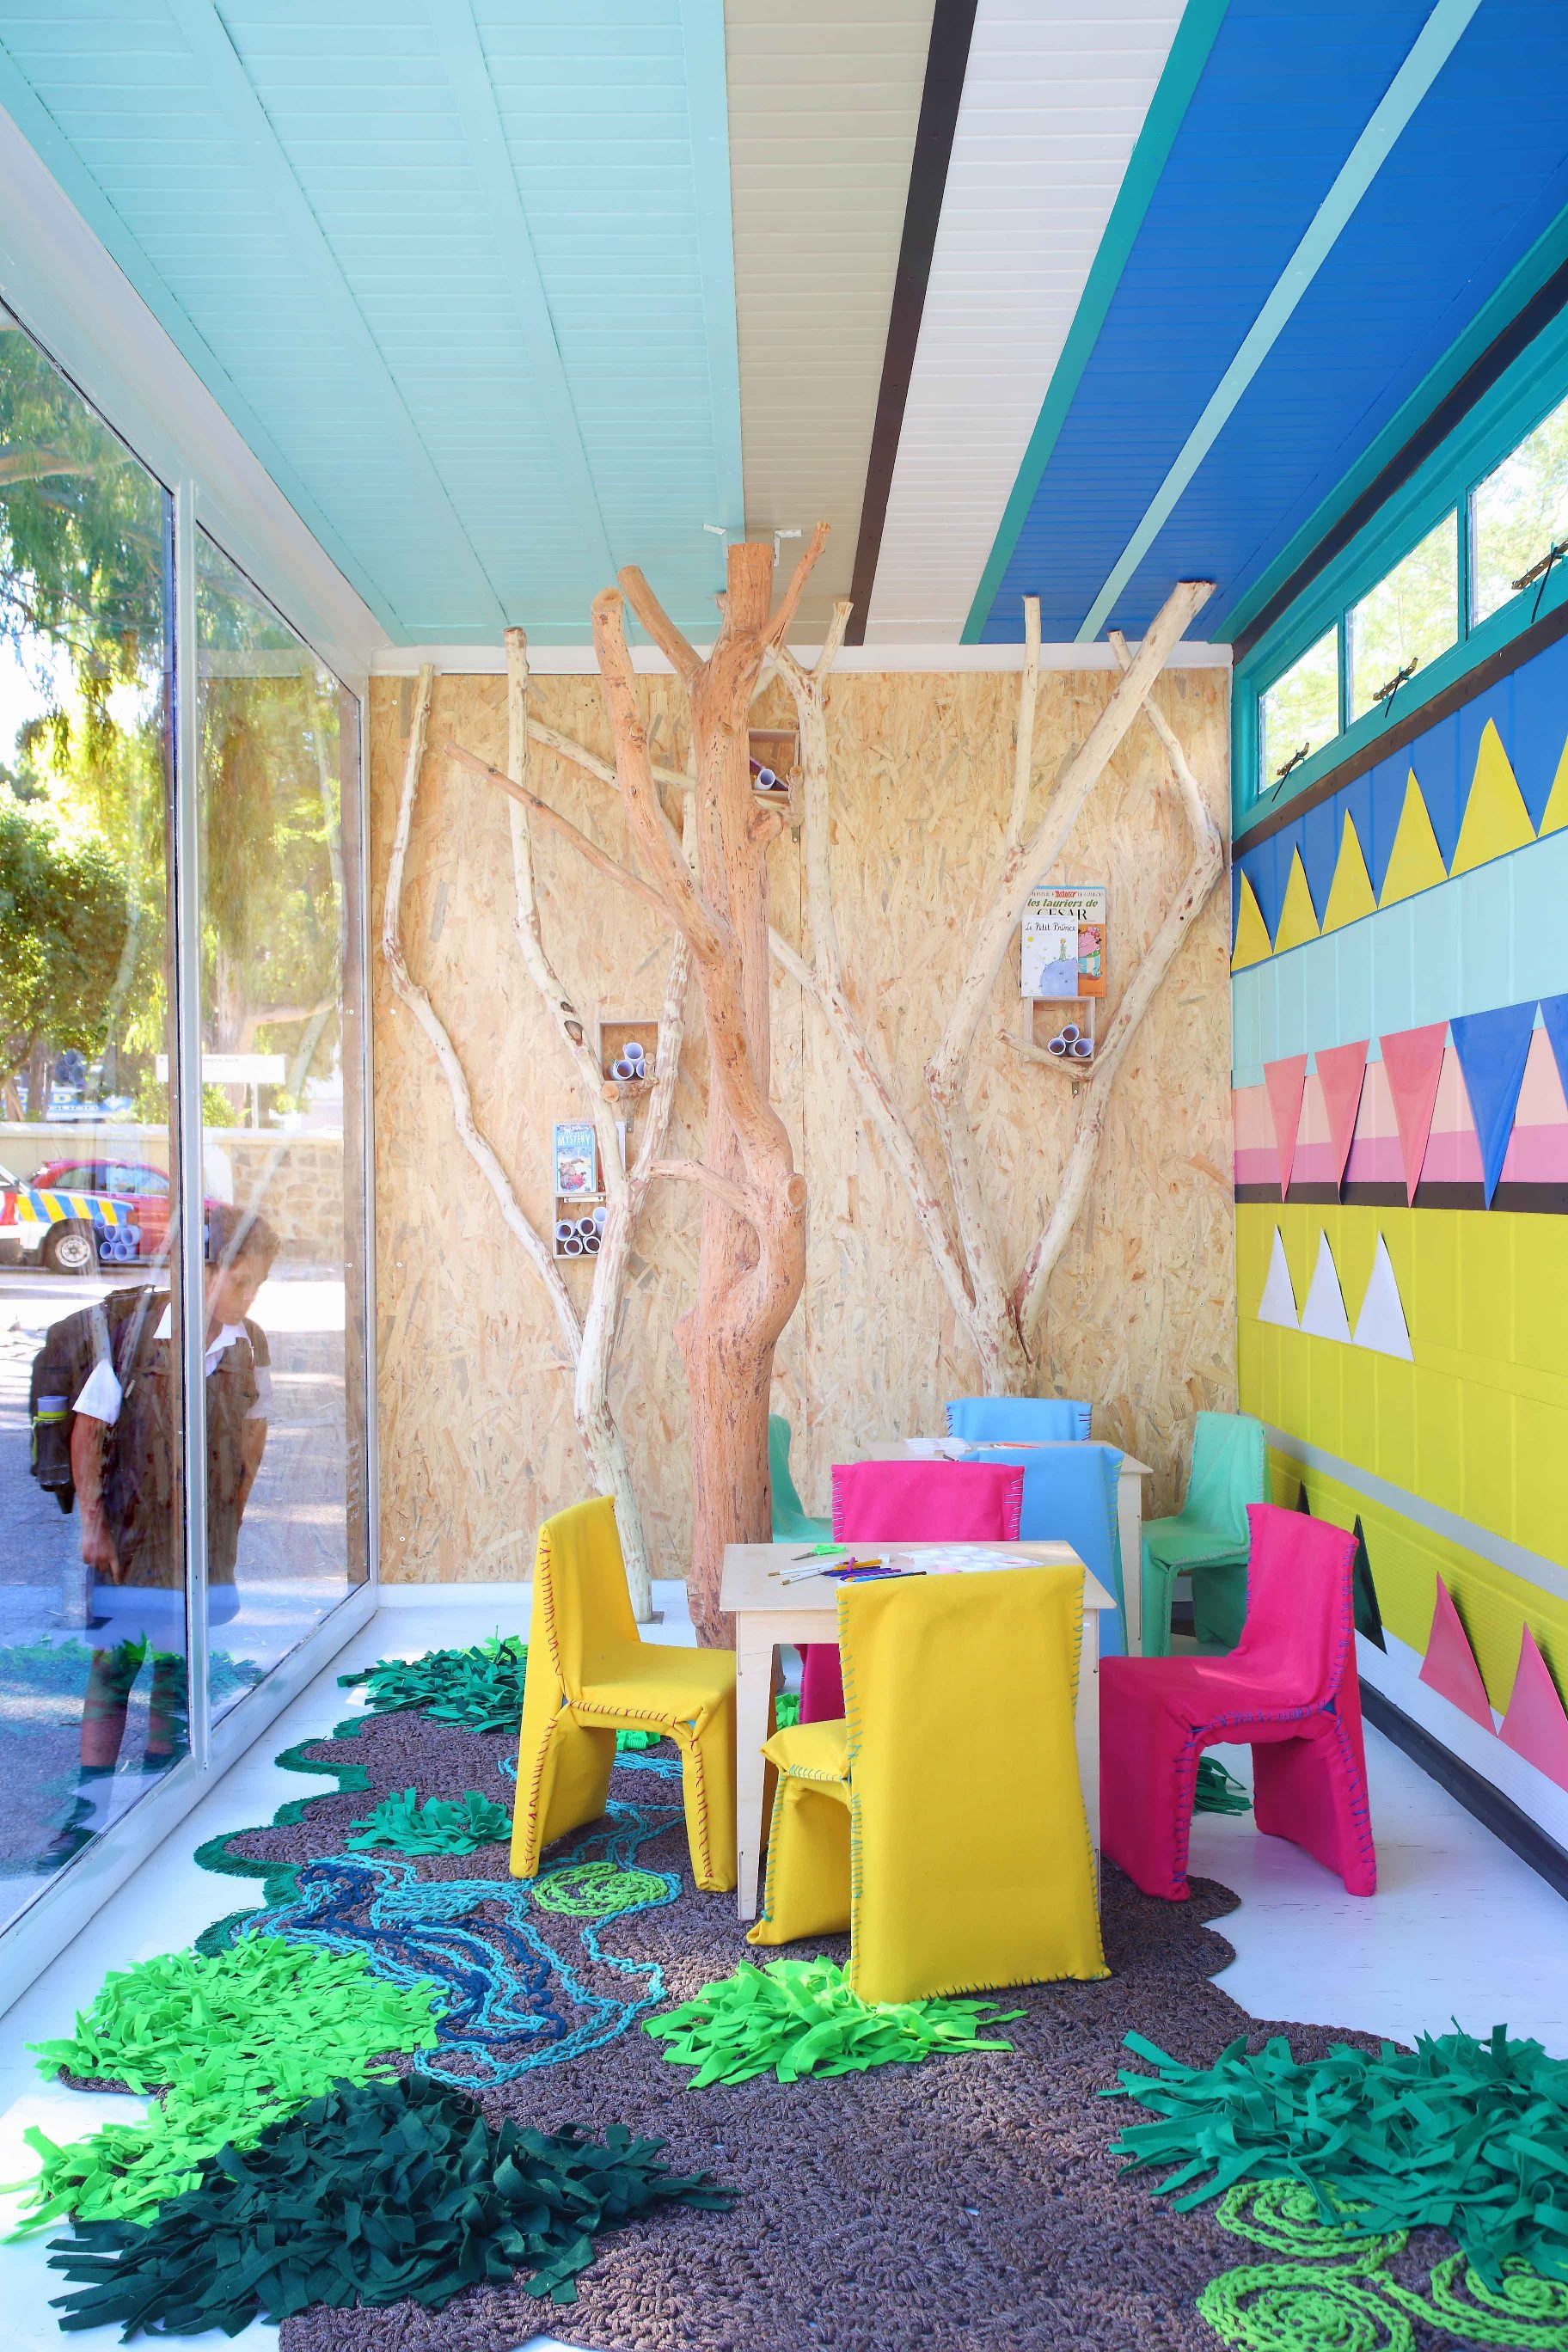 The COLOURS are soft yet bold and graphically representing earth, horizon and continuing up onto the ceiling to represent the sky. The magnetic stripes across the back wall also allow the geometrical SHAPES to be arranged by the children in different patterns, allowing them to change their own environment.  The colours therapeutic qualities are explored to create a space that is both calming and inspiring